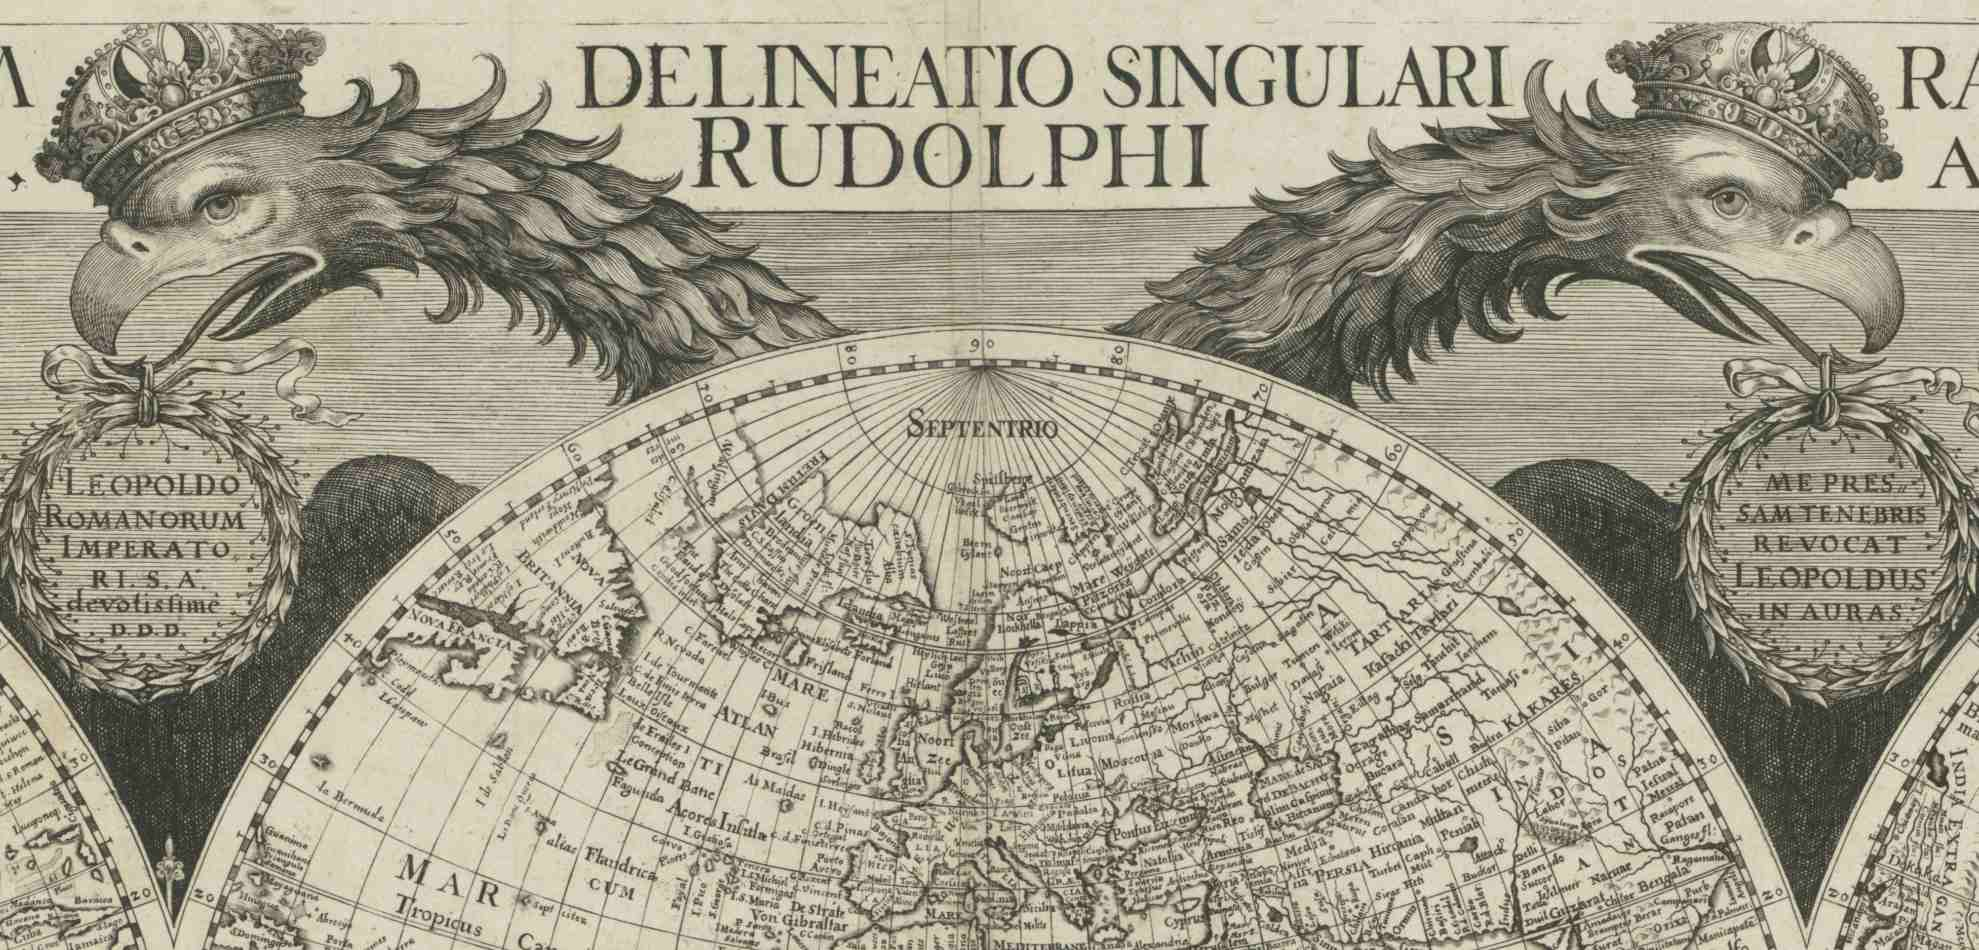 1659 world map on central hemisphere and two adjoining half spheres embraced by a double-headed eagle, by Philip Eckebrecht